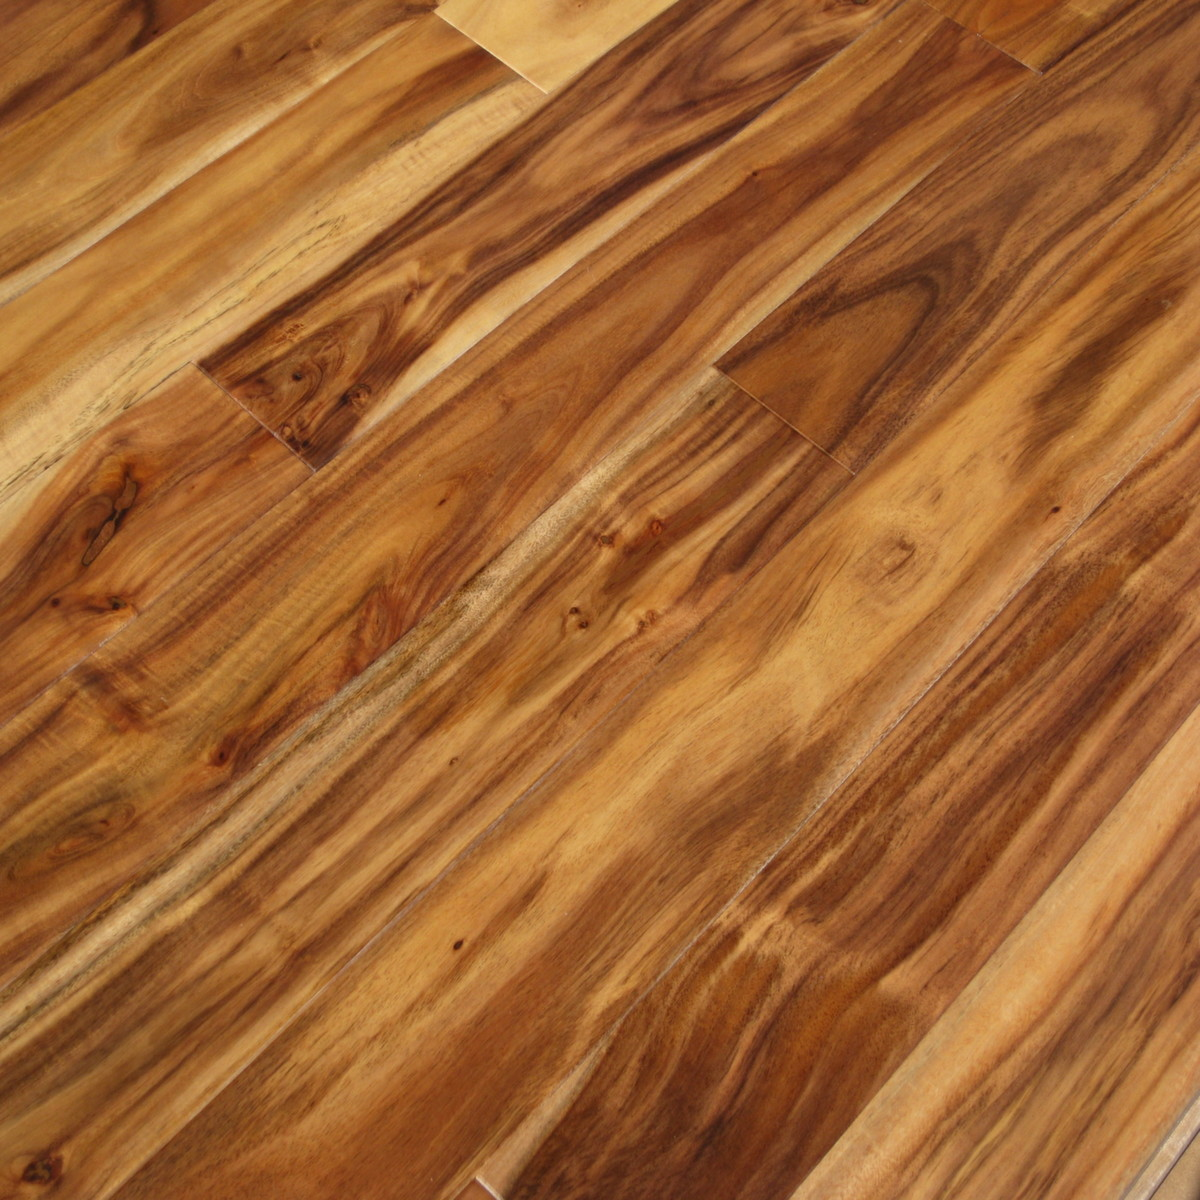 Wood Floor Colors Hardwood Floors And Wood Flooring: Acacia Natural Hand Scraped Hardwood Flooring